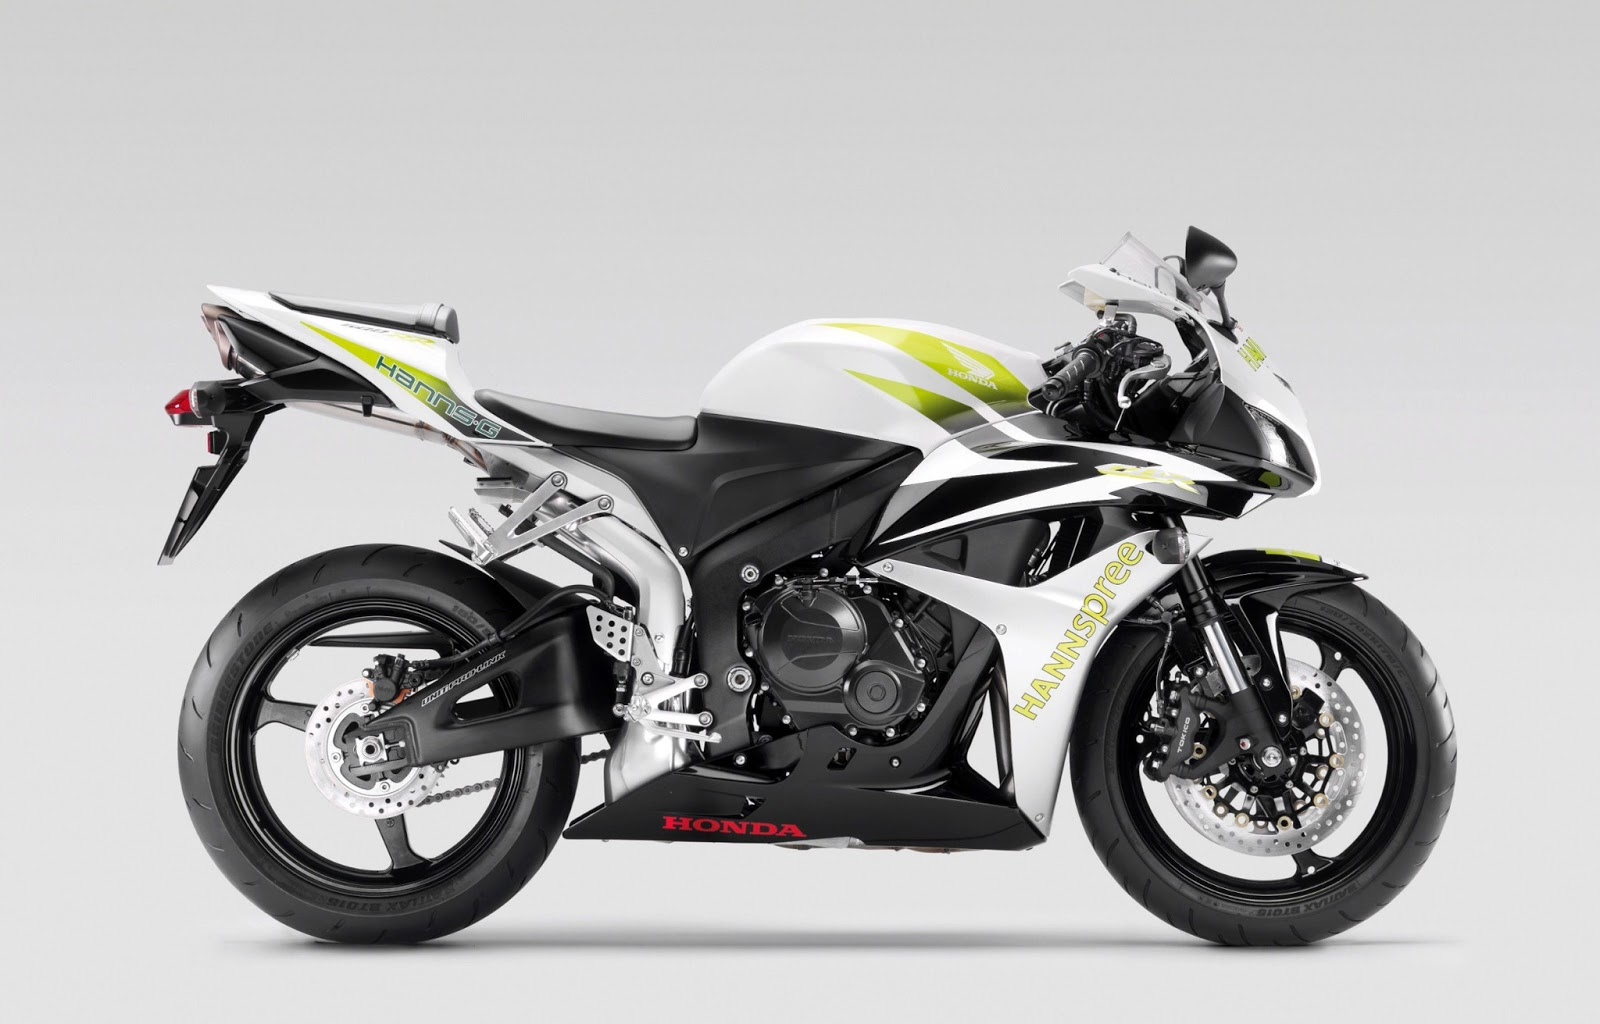 honda cbr 600rr hd wallpapers high definition free background. Black Bedroom Furniture Sets. Home Design Ideas